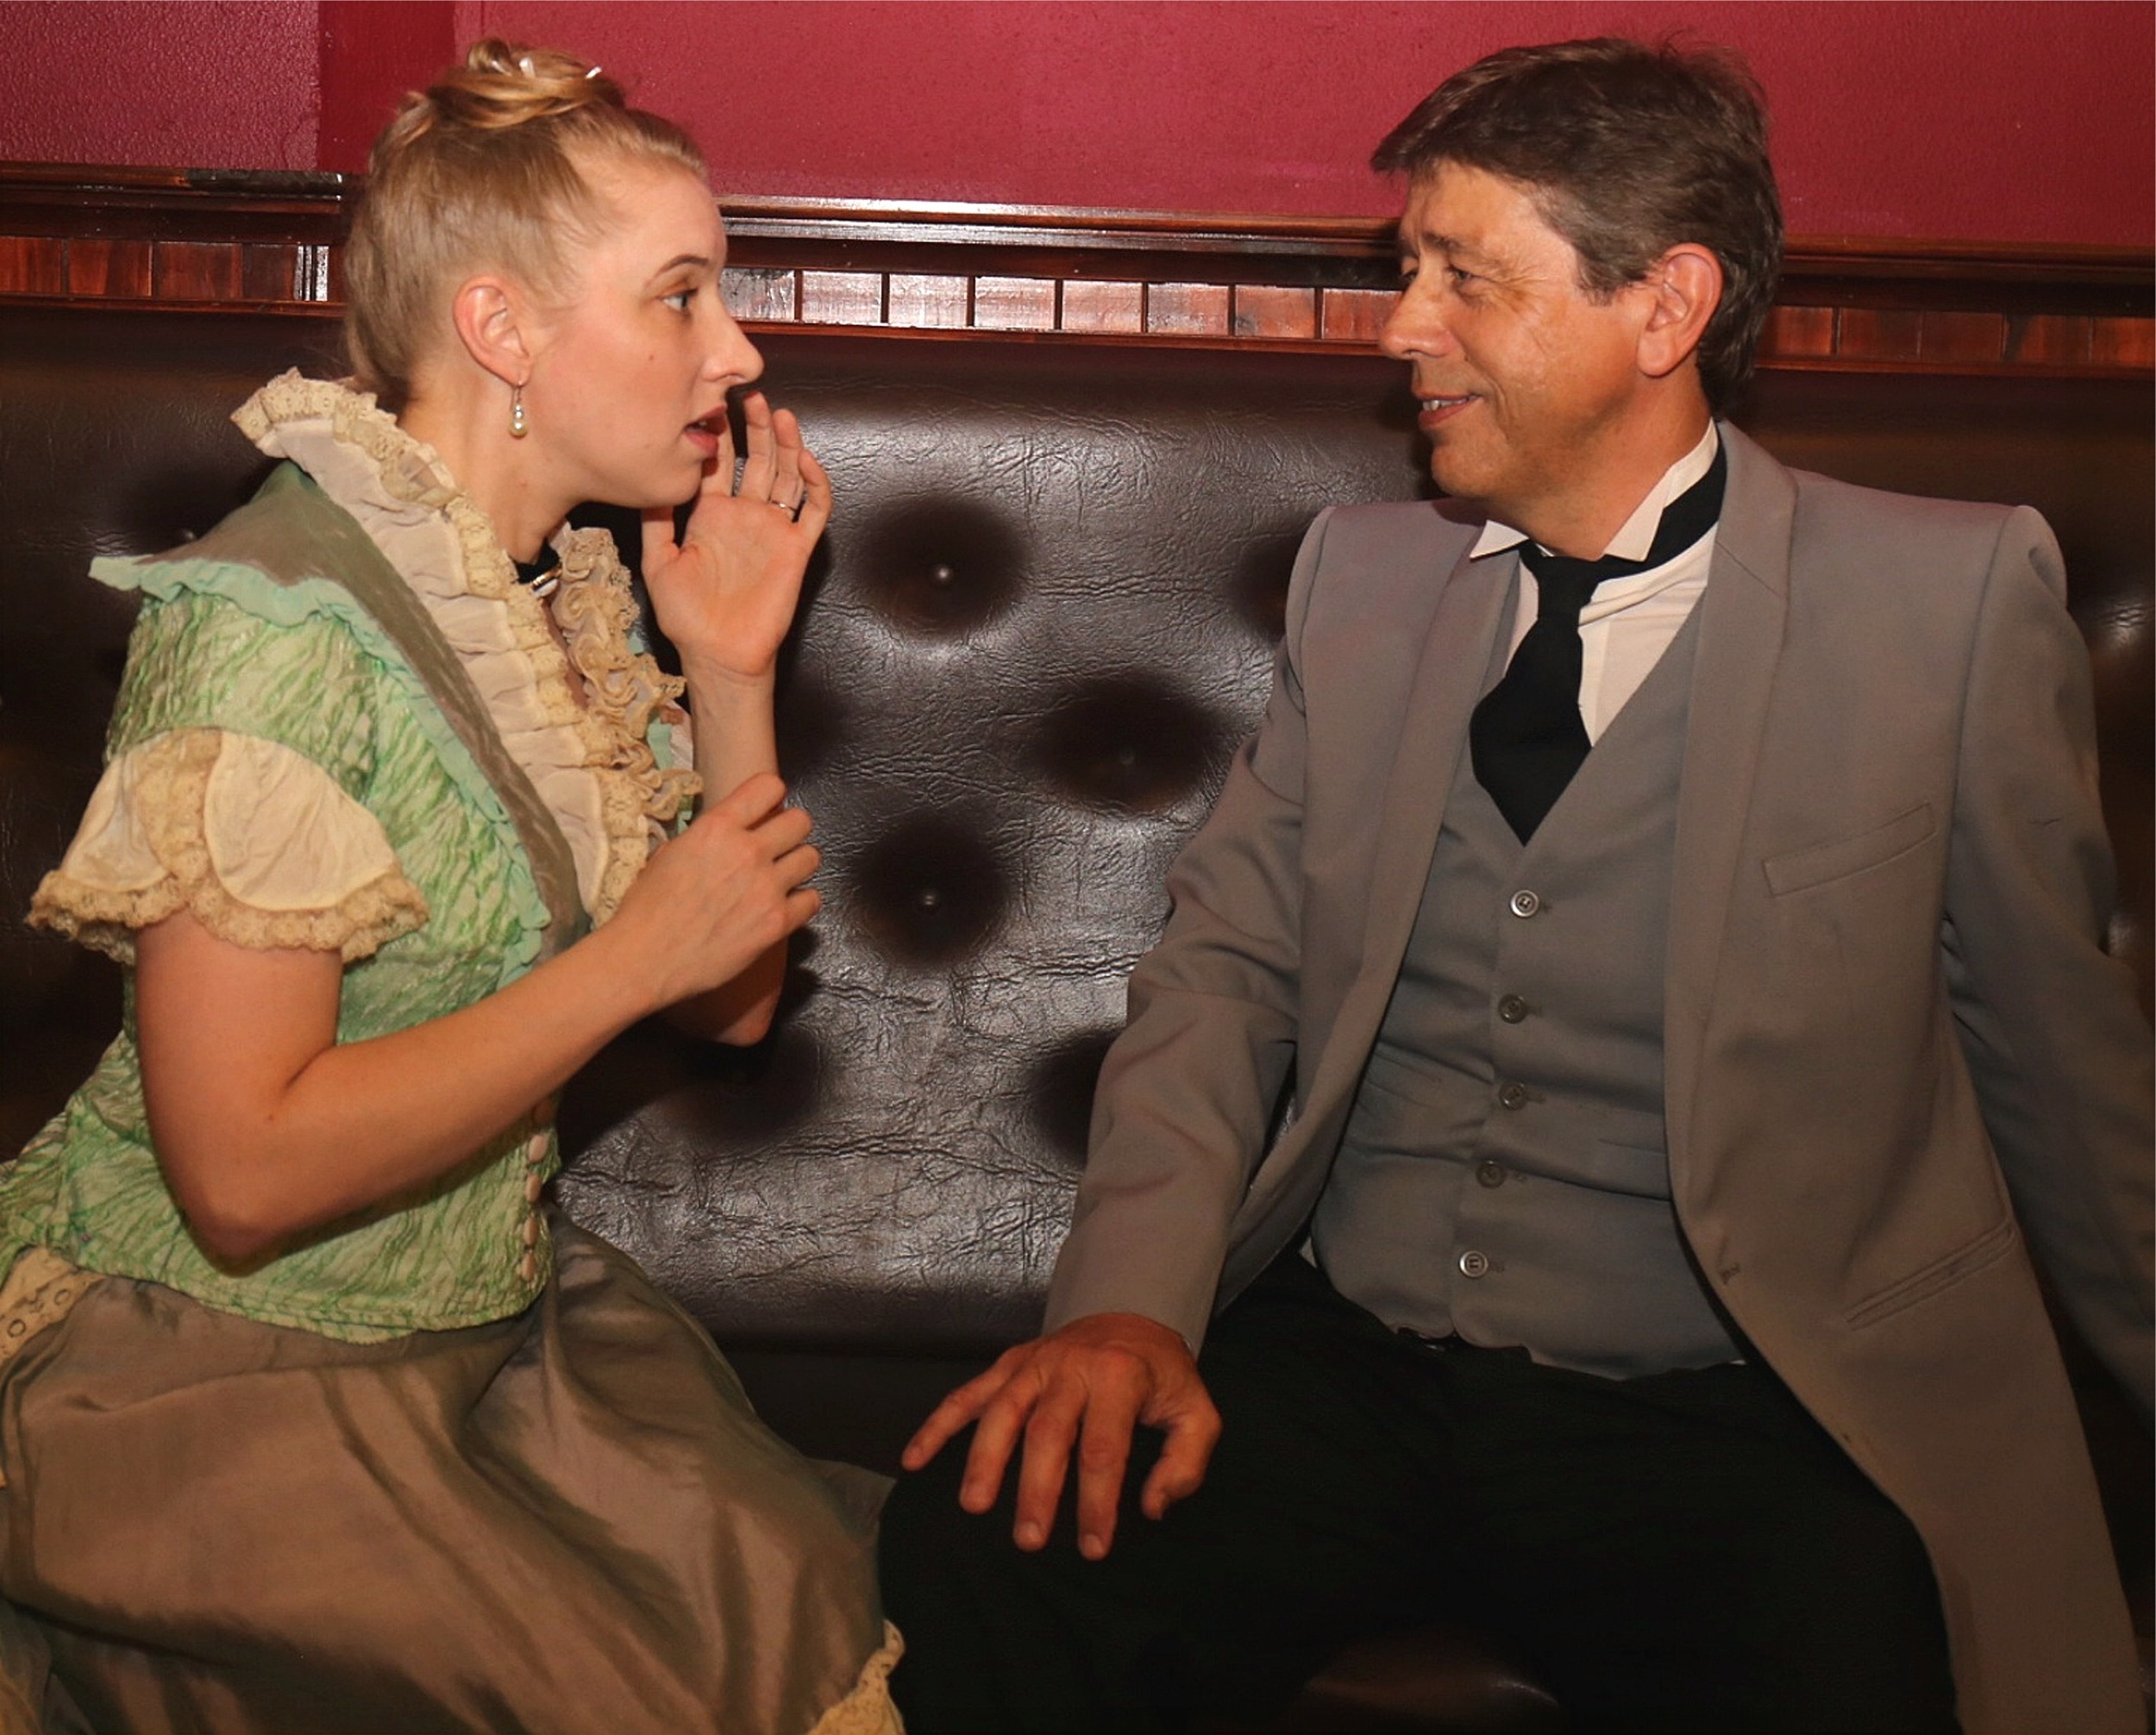 Inspector Rough (Chris Juckes, right) comes to the aid of Bella (Emma Shaw) in  Gaslight  at Limelight Theatre.